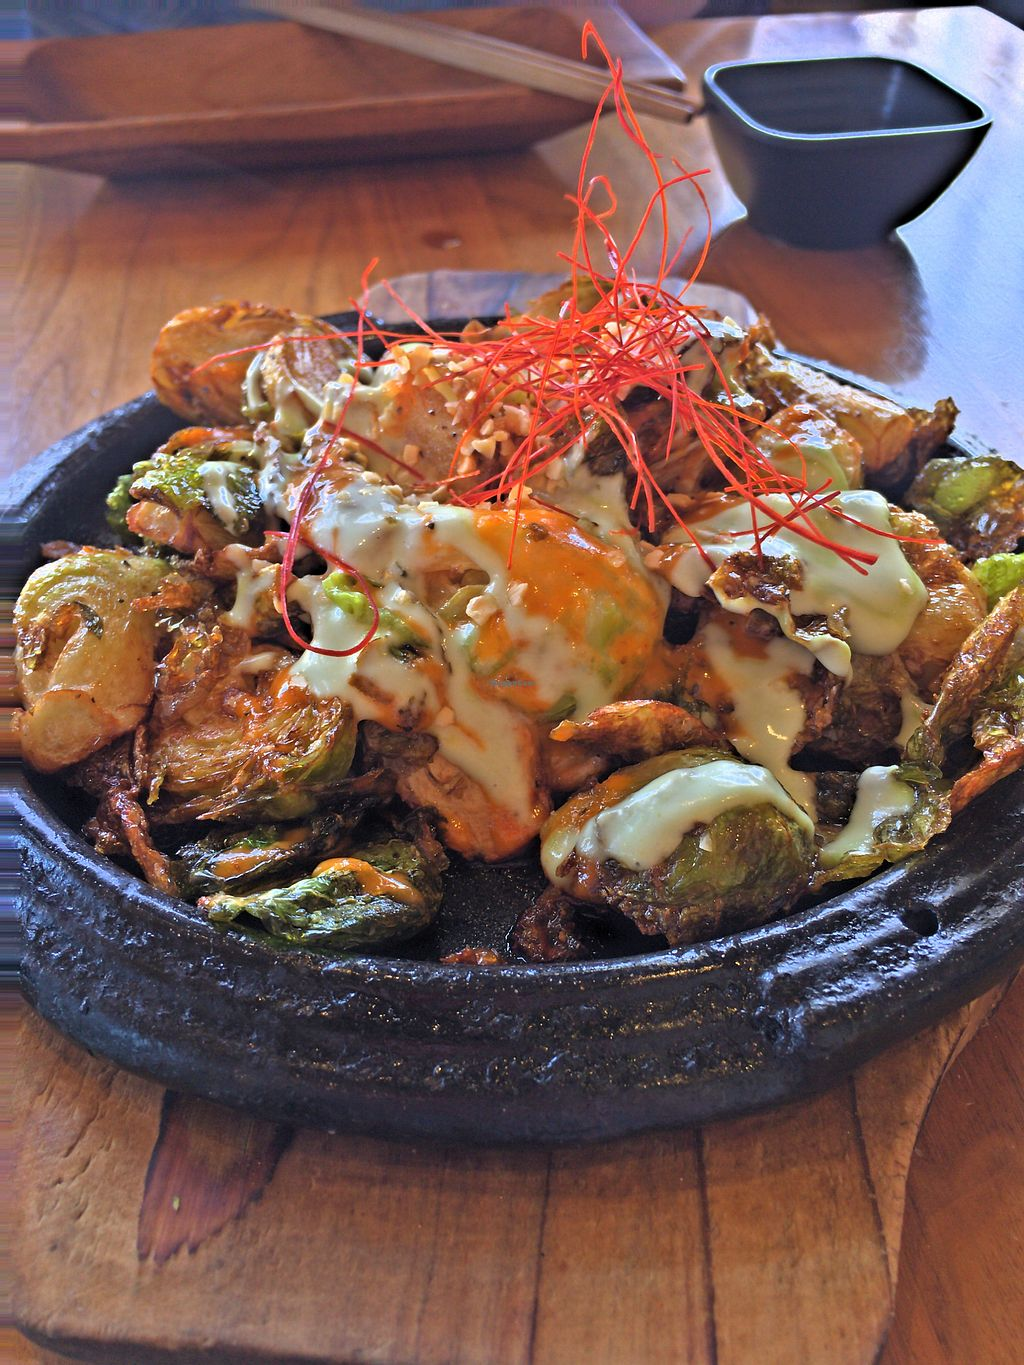 """Photo of Shizen Vegan Sushi Bar  by <a href=""""/members/profile/EthanBungay"""">EthanBungay</a> <br/>Brussell's Sprouts <br/> April 18, 2018  - <a href='/contact/abuse/image/54689/387437'>Report</a>"""